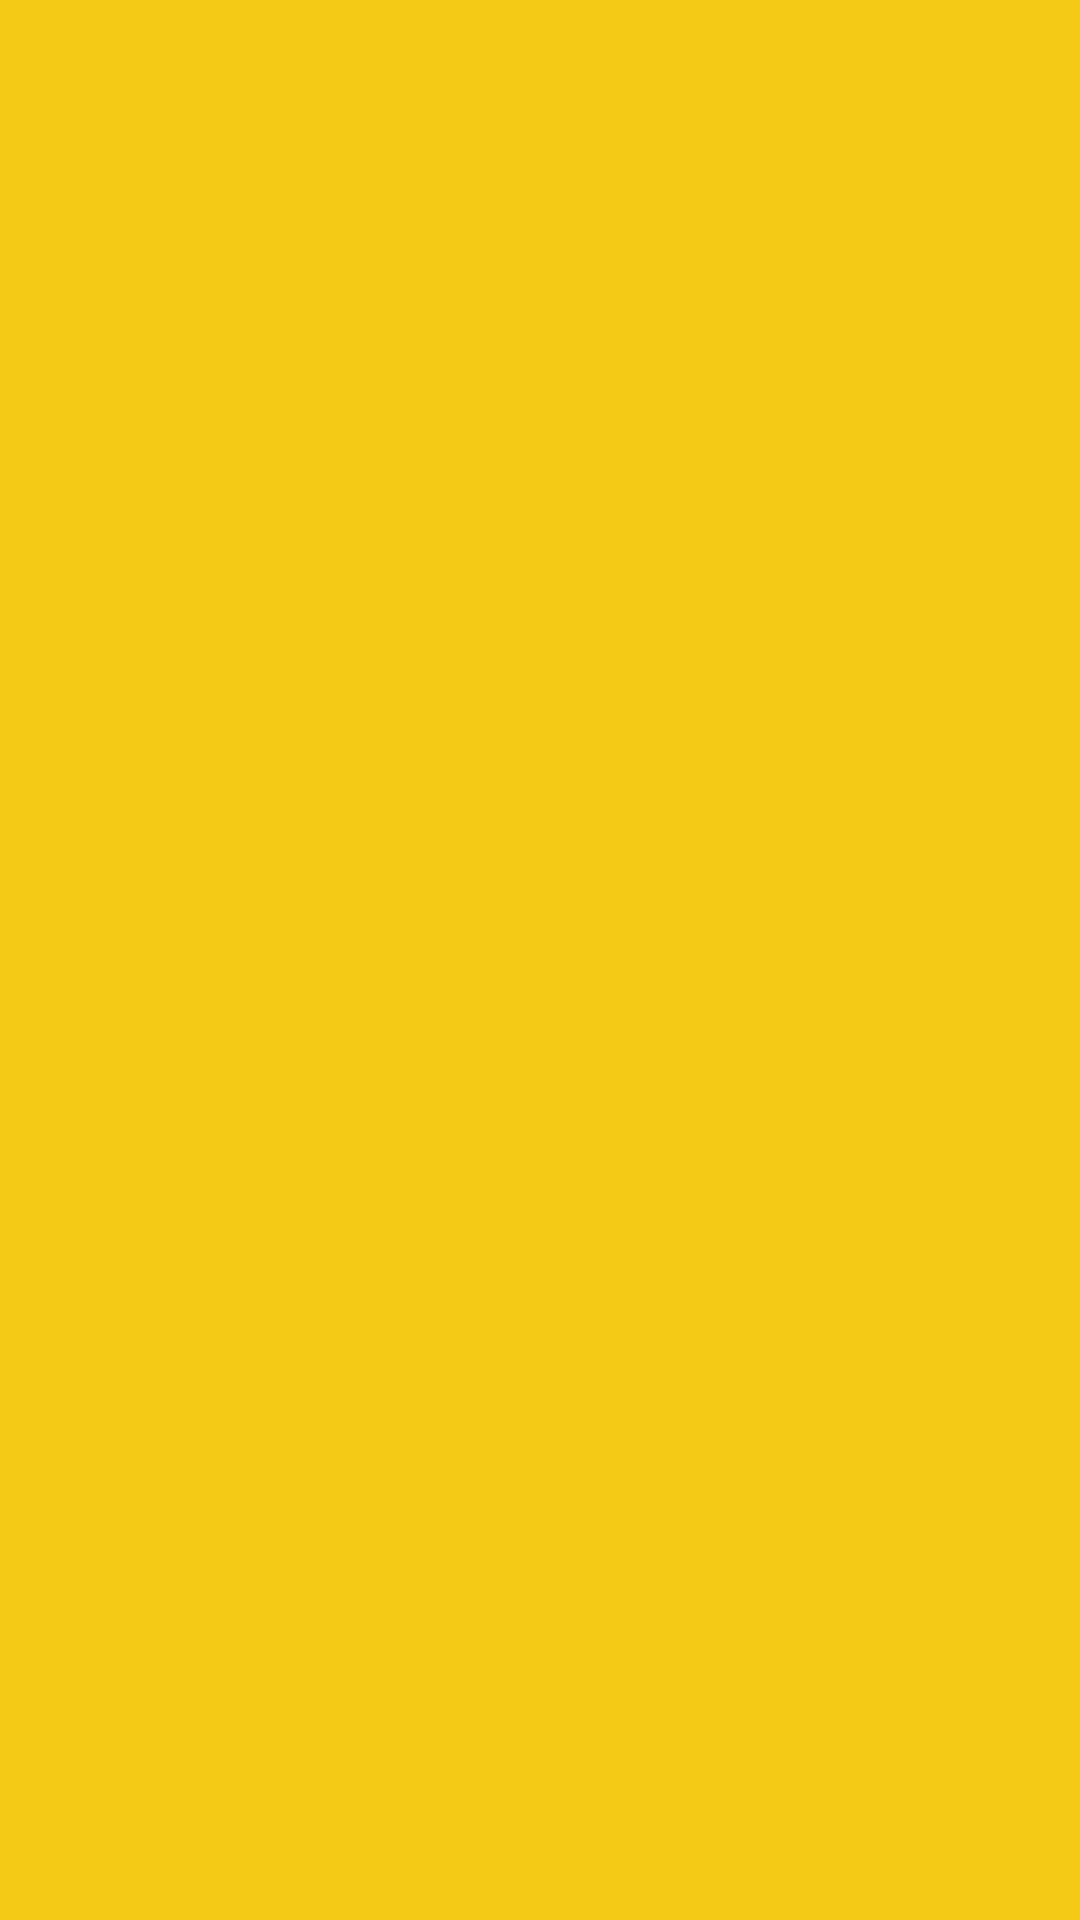 1080x1920 Jonquil Solid Color Background